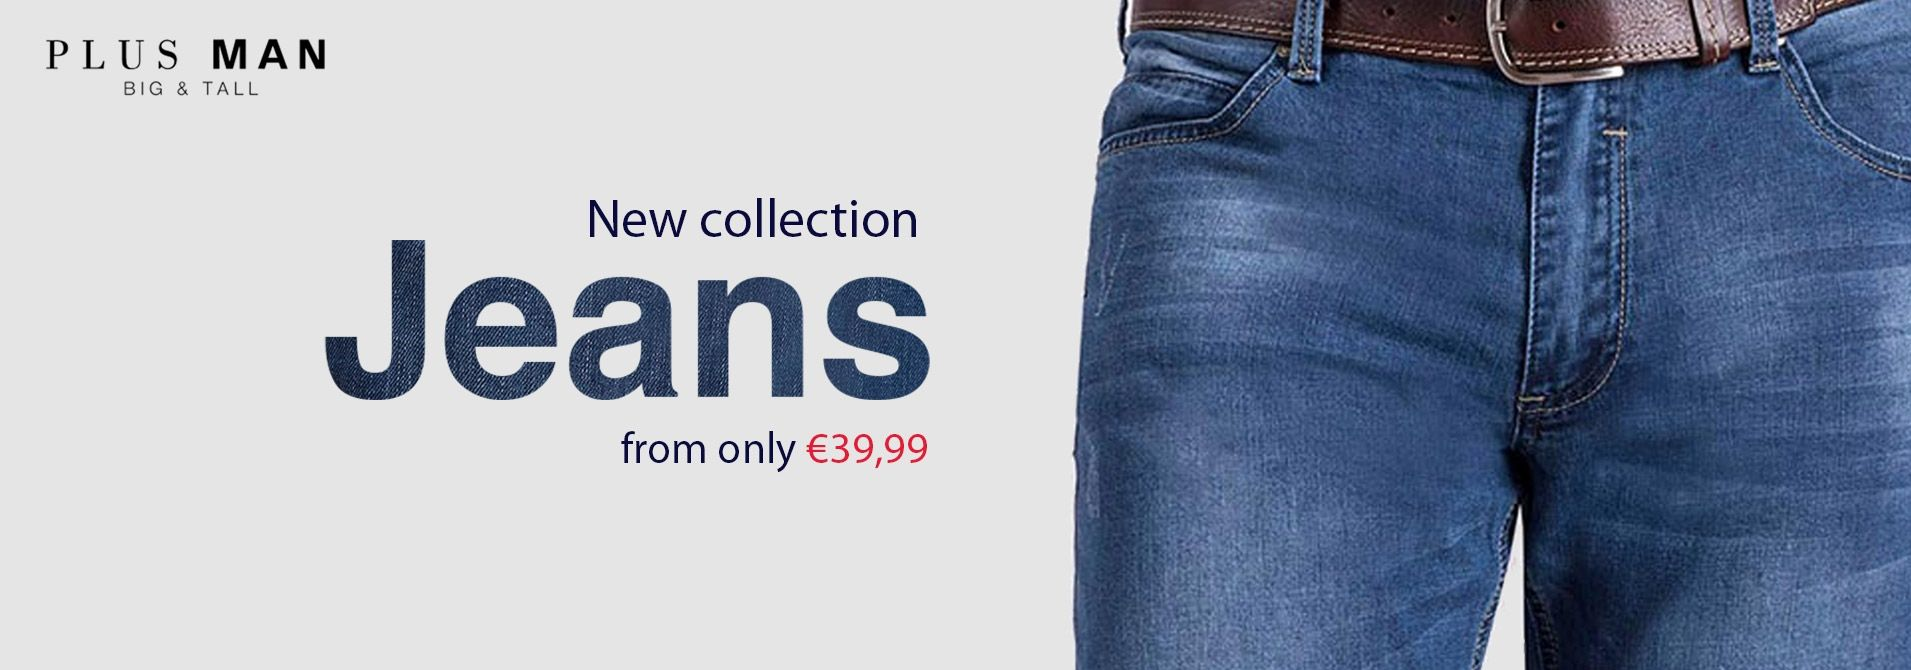 New collection jeanswear in big sizes